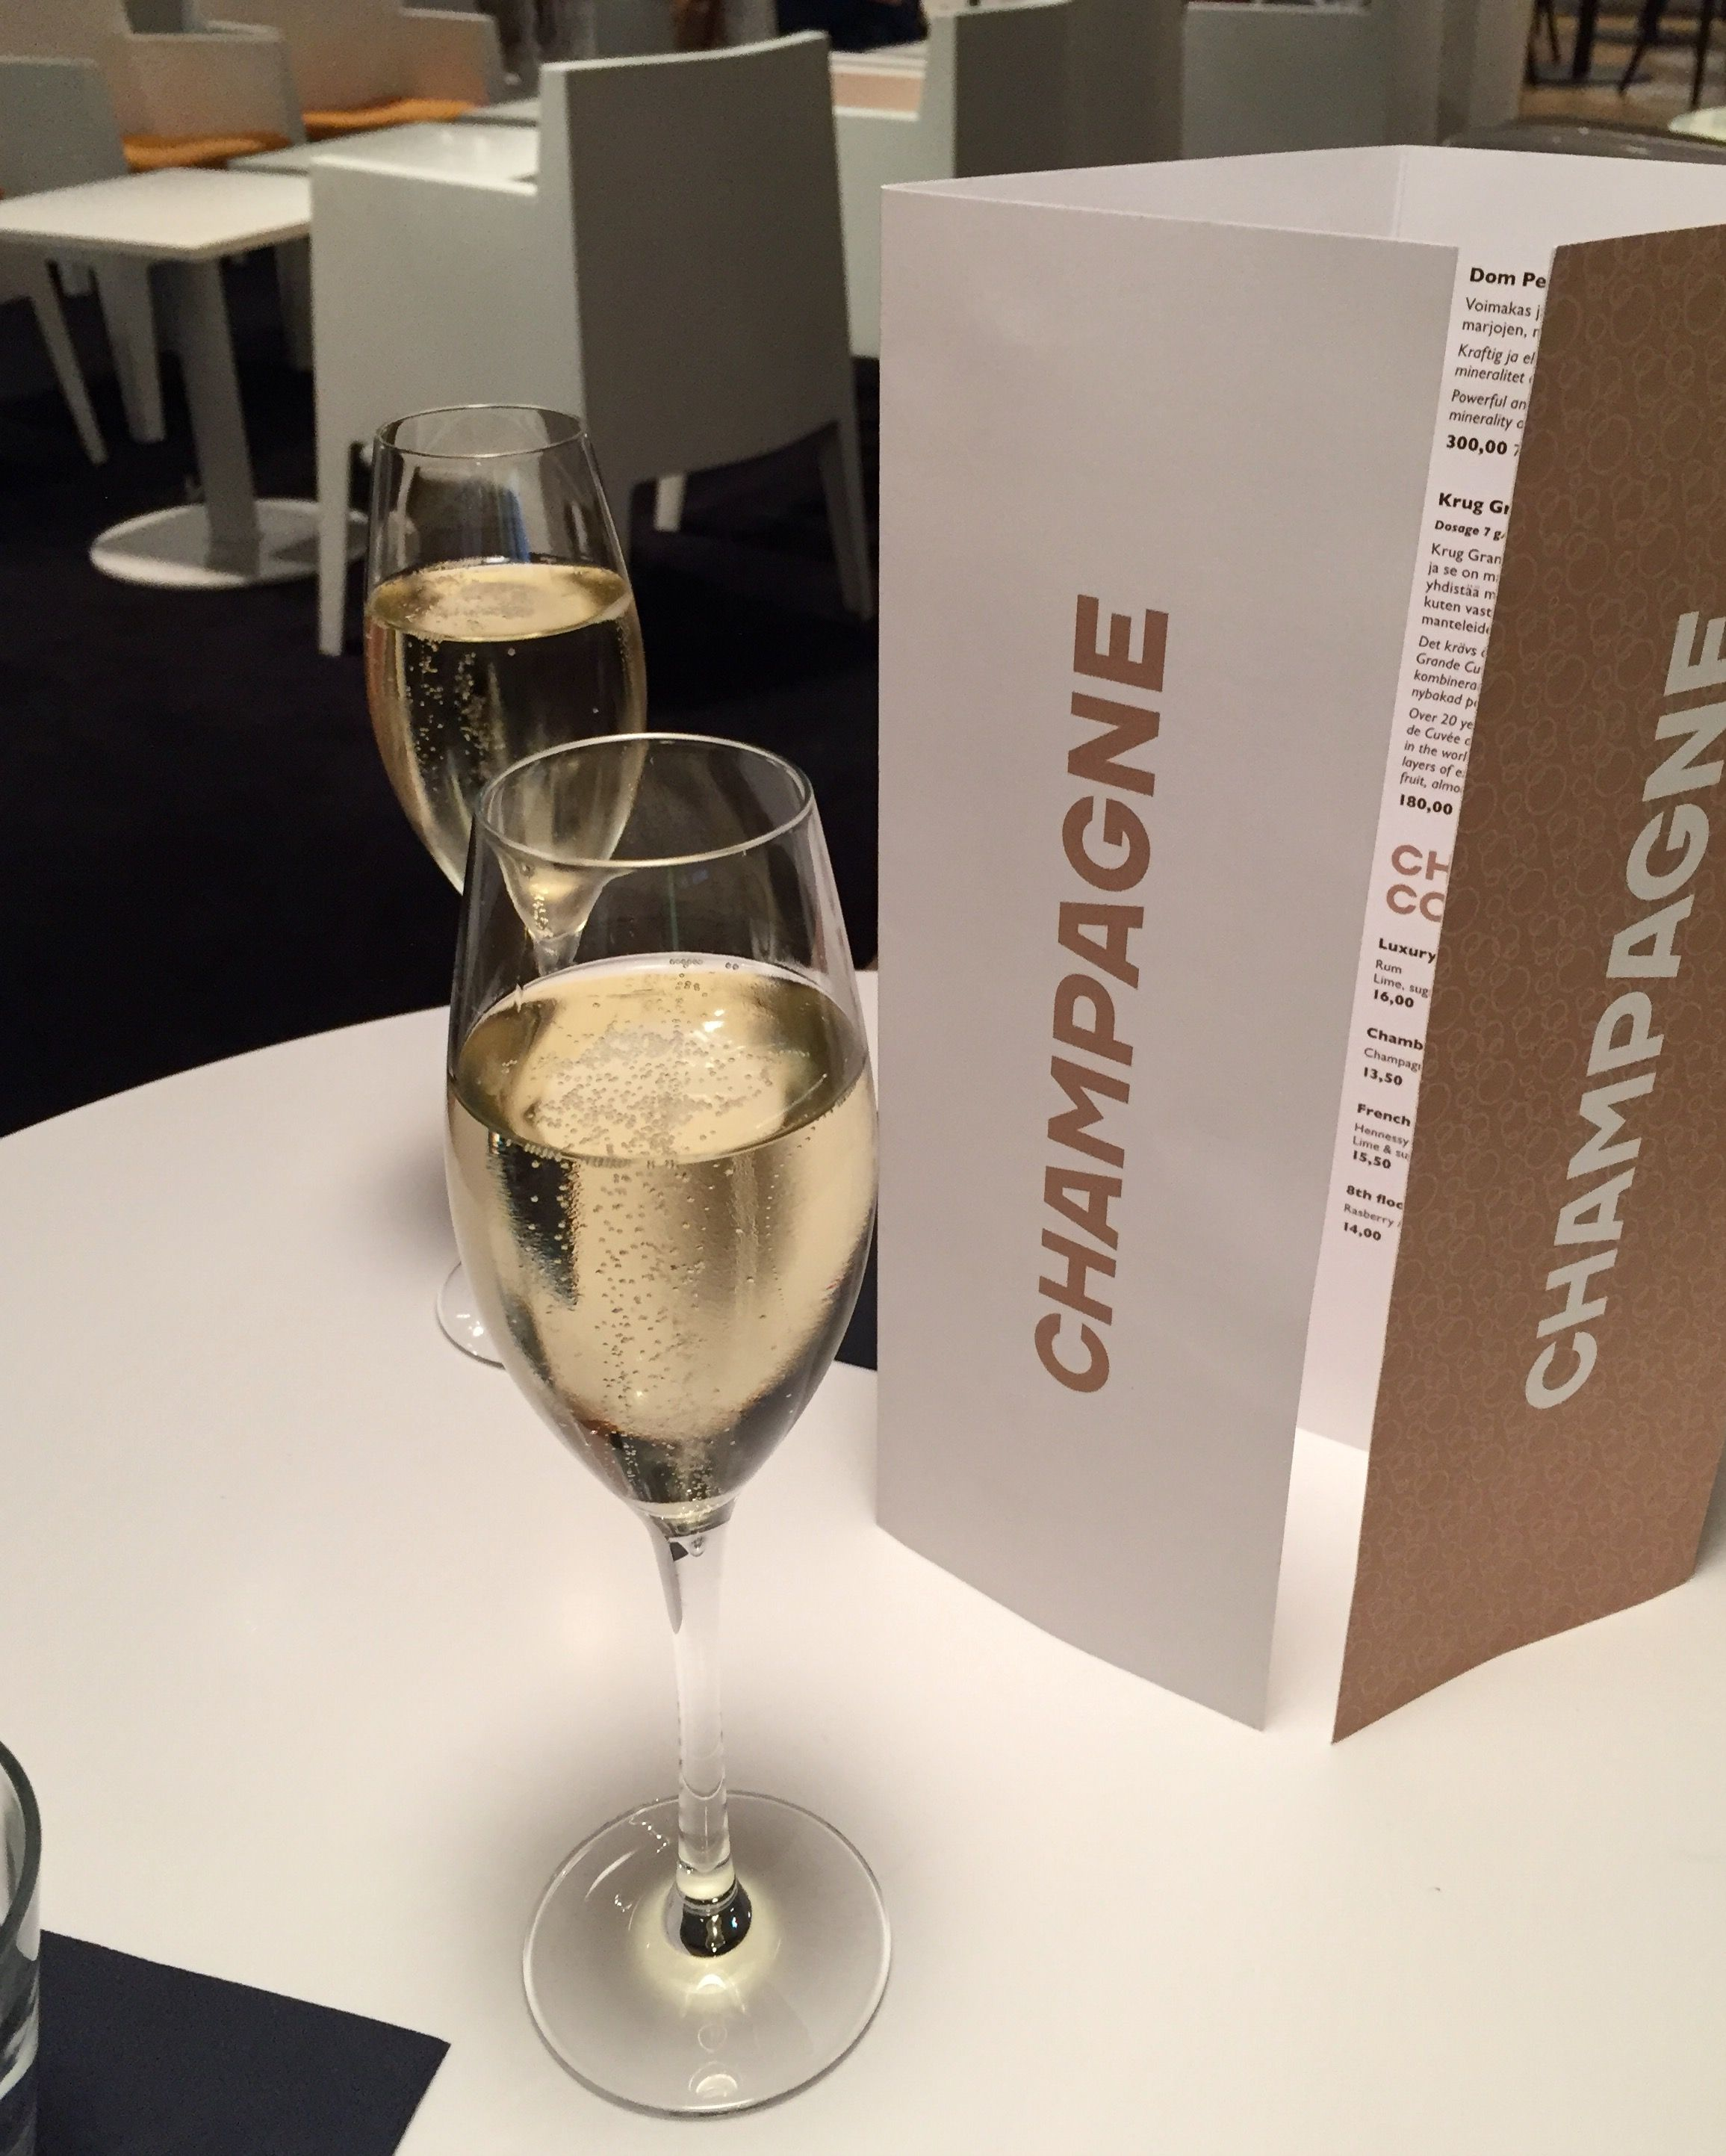 Champagne Ruinart At Stockmann 8th Floor Bar Wines Alcoholic